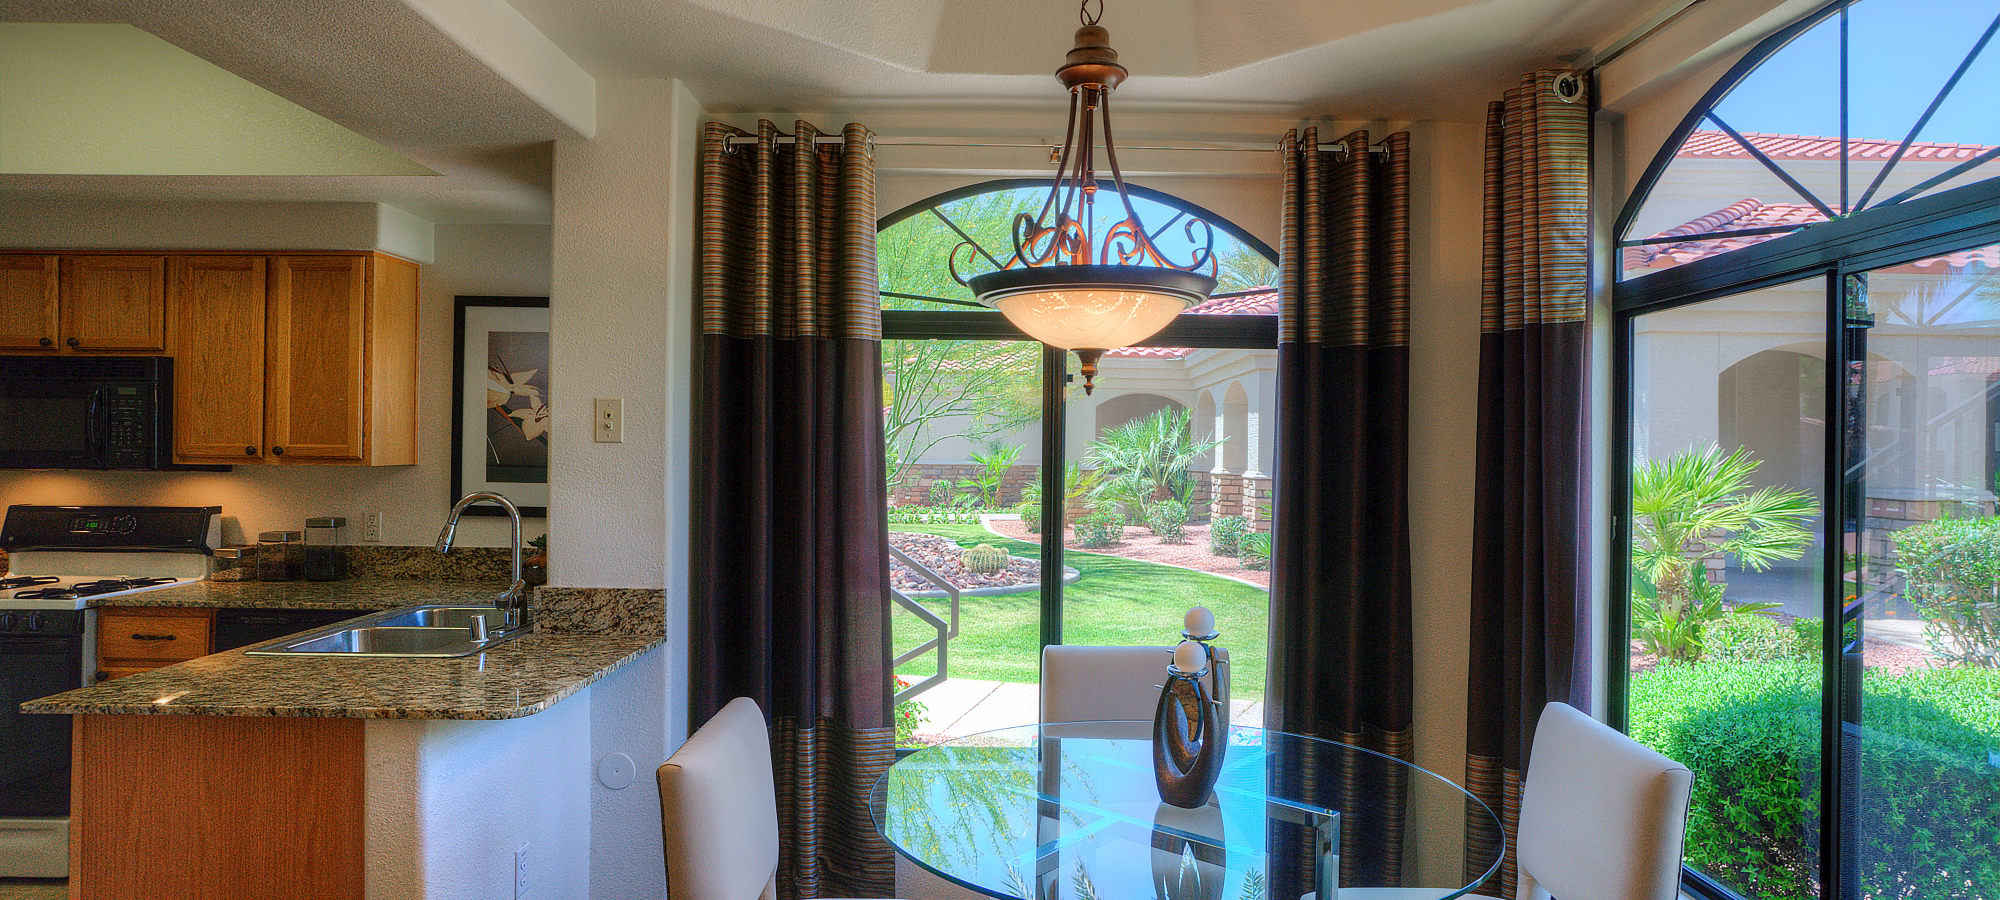 Dining room with large windows at San Cervantes in Chandler, Arizona